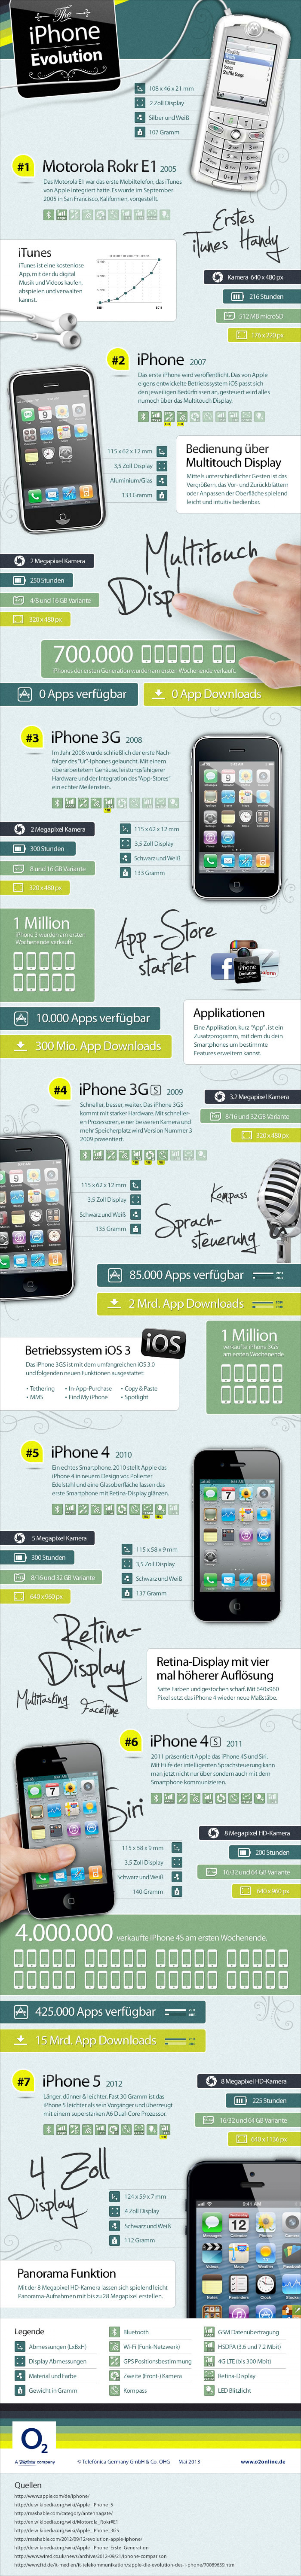 Die iPhone Evolution Infographic